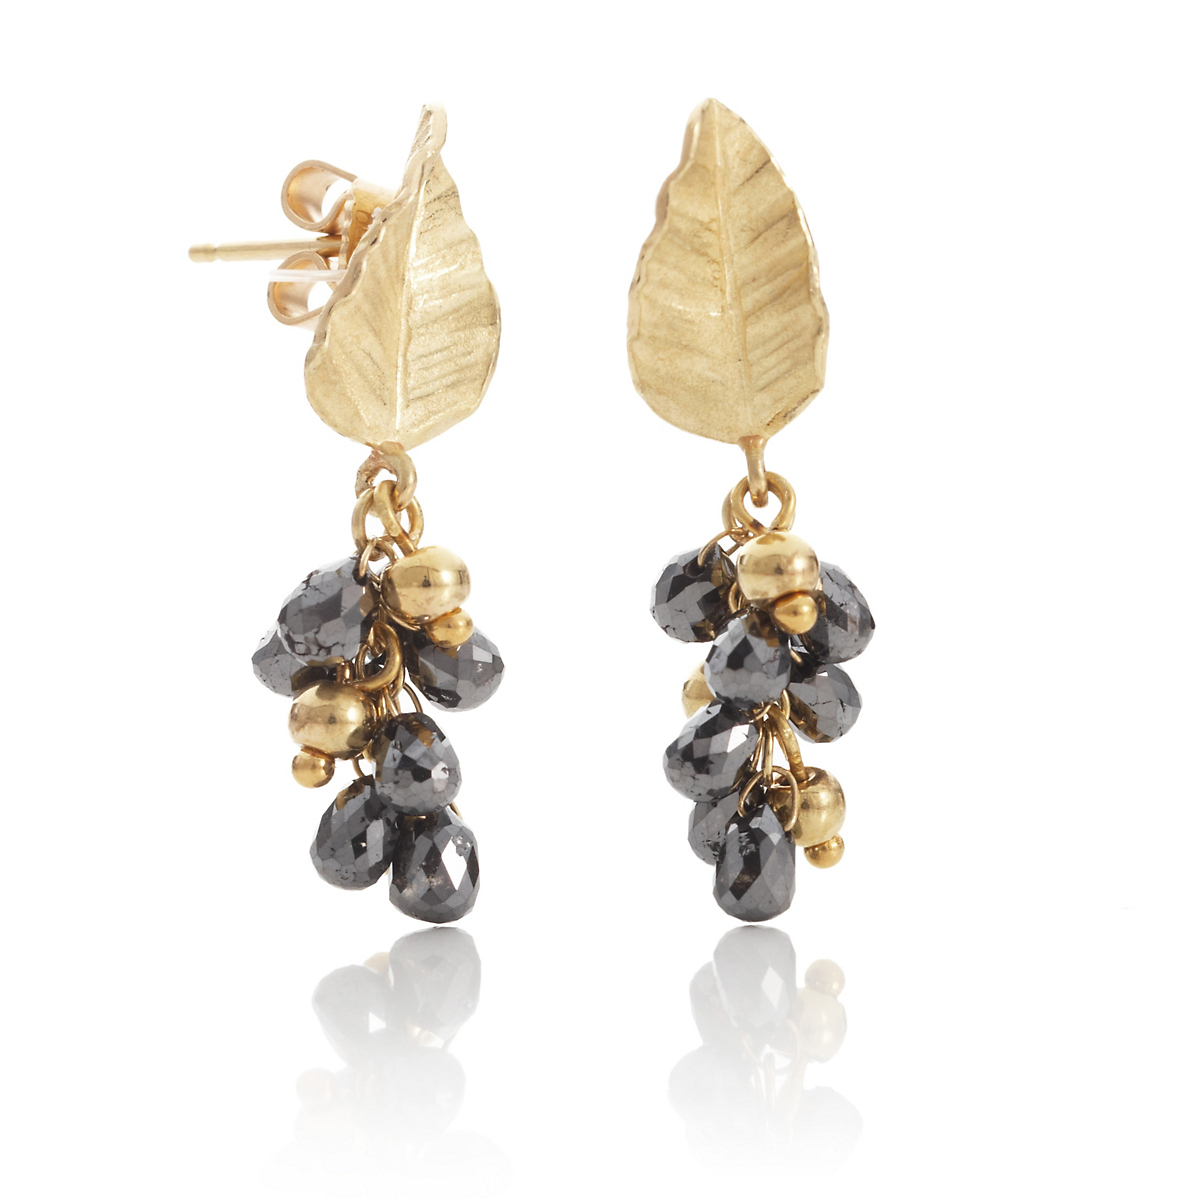 Barbara Heinrich Black Diamond & Gold Leaf Top Earrings